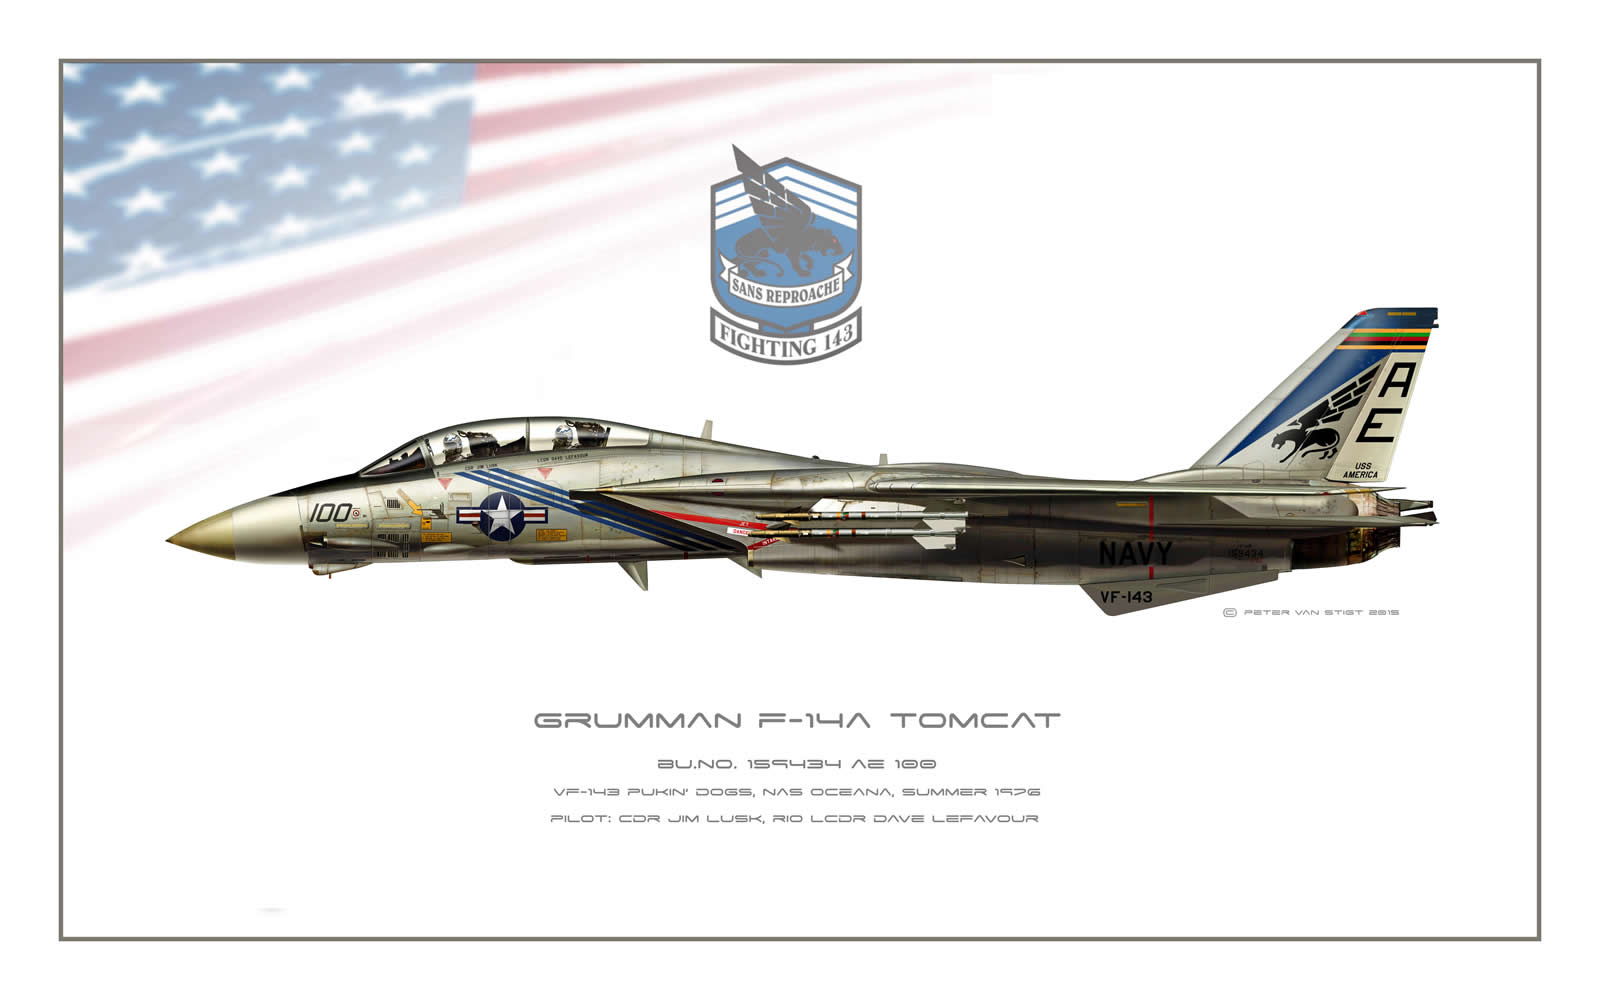 VF-143 Pukin Dogs F-14 Tomcat Profile